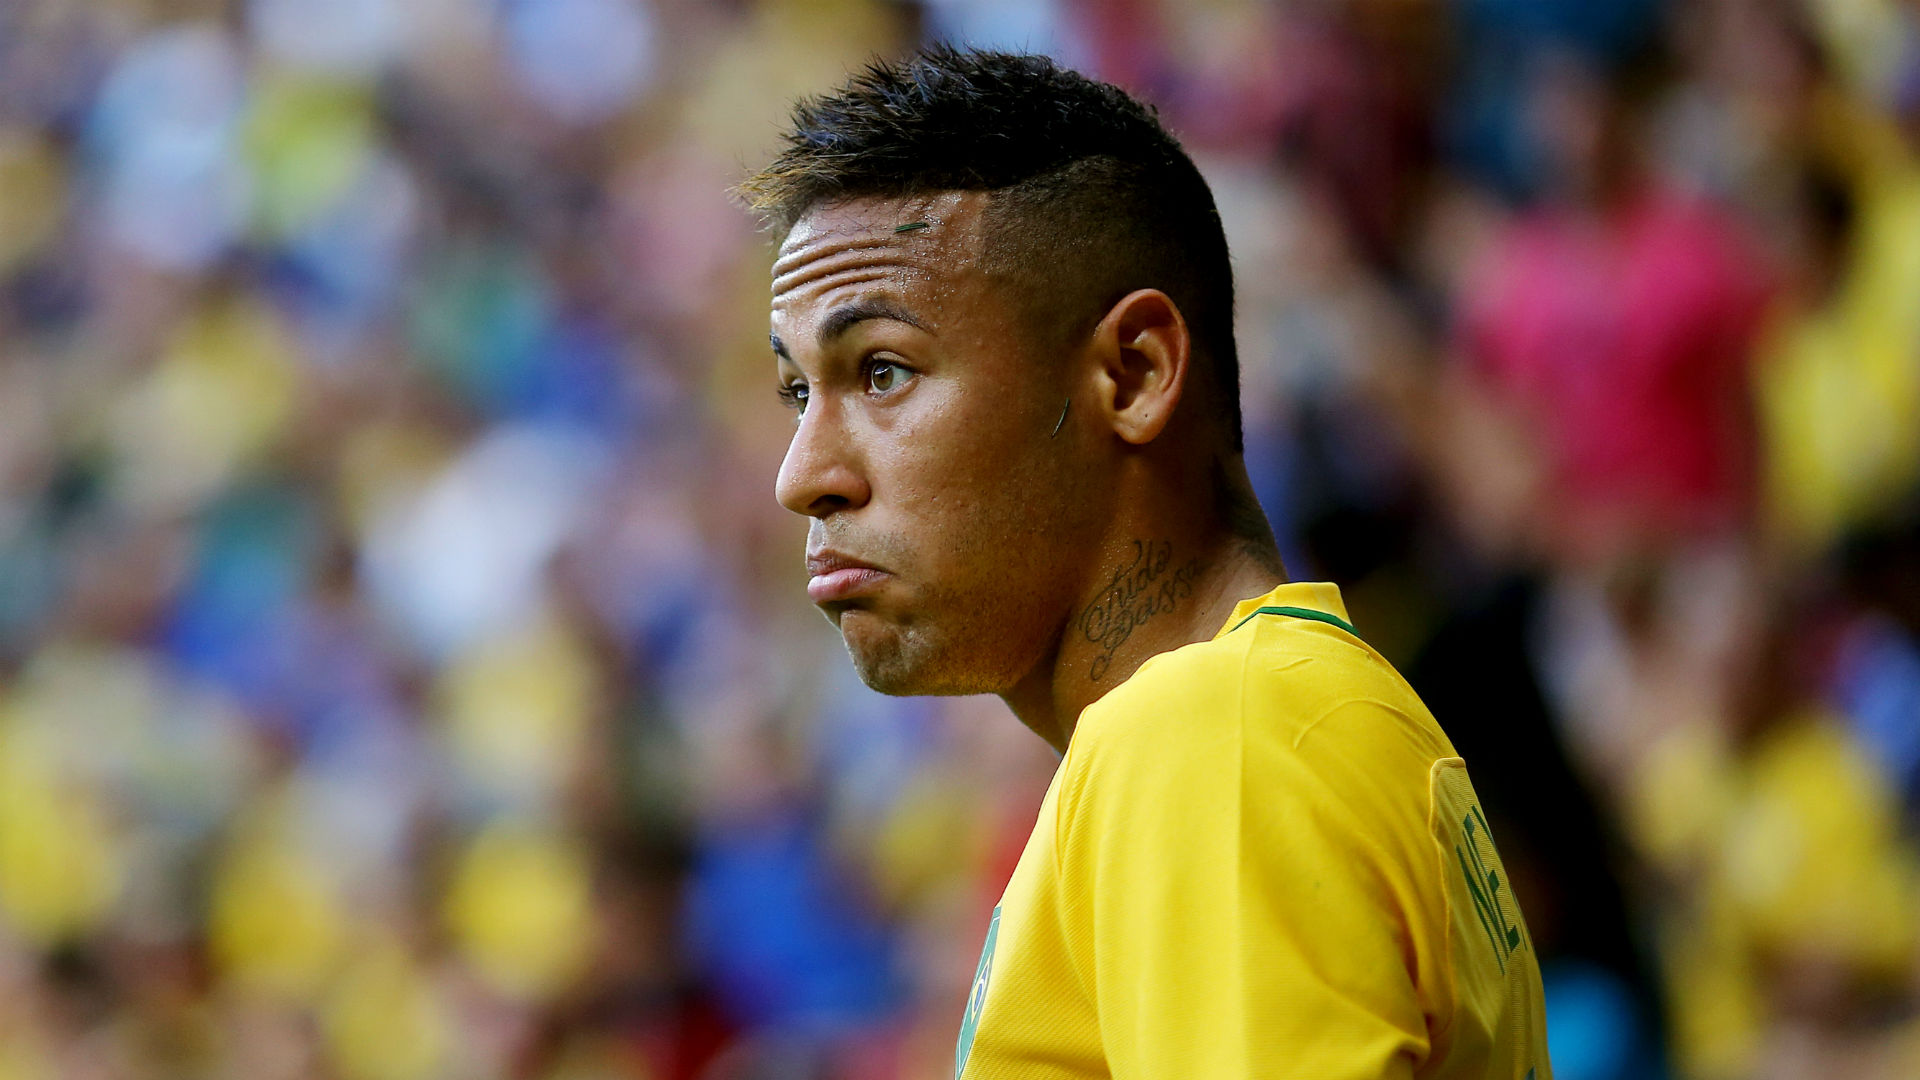 Neymar thwarted as 10-man South Africa holds Brazil